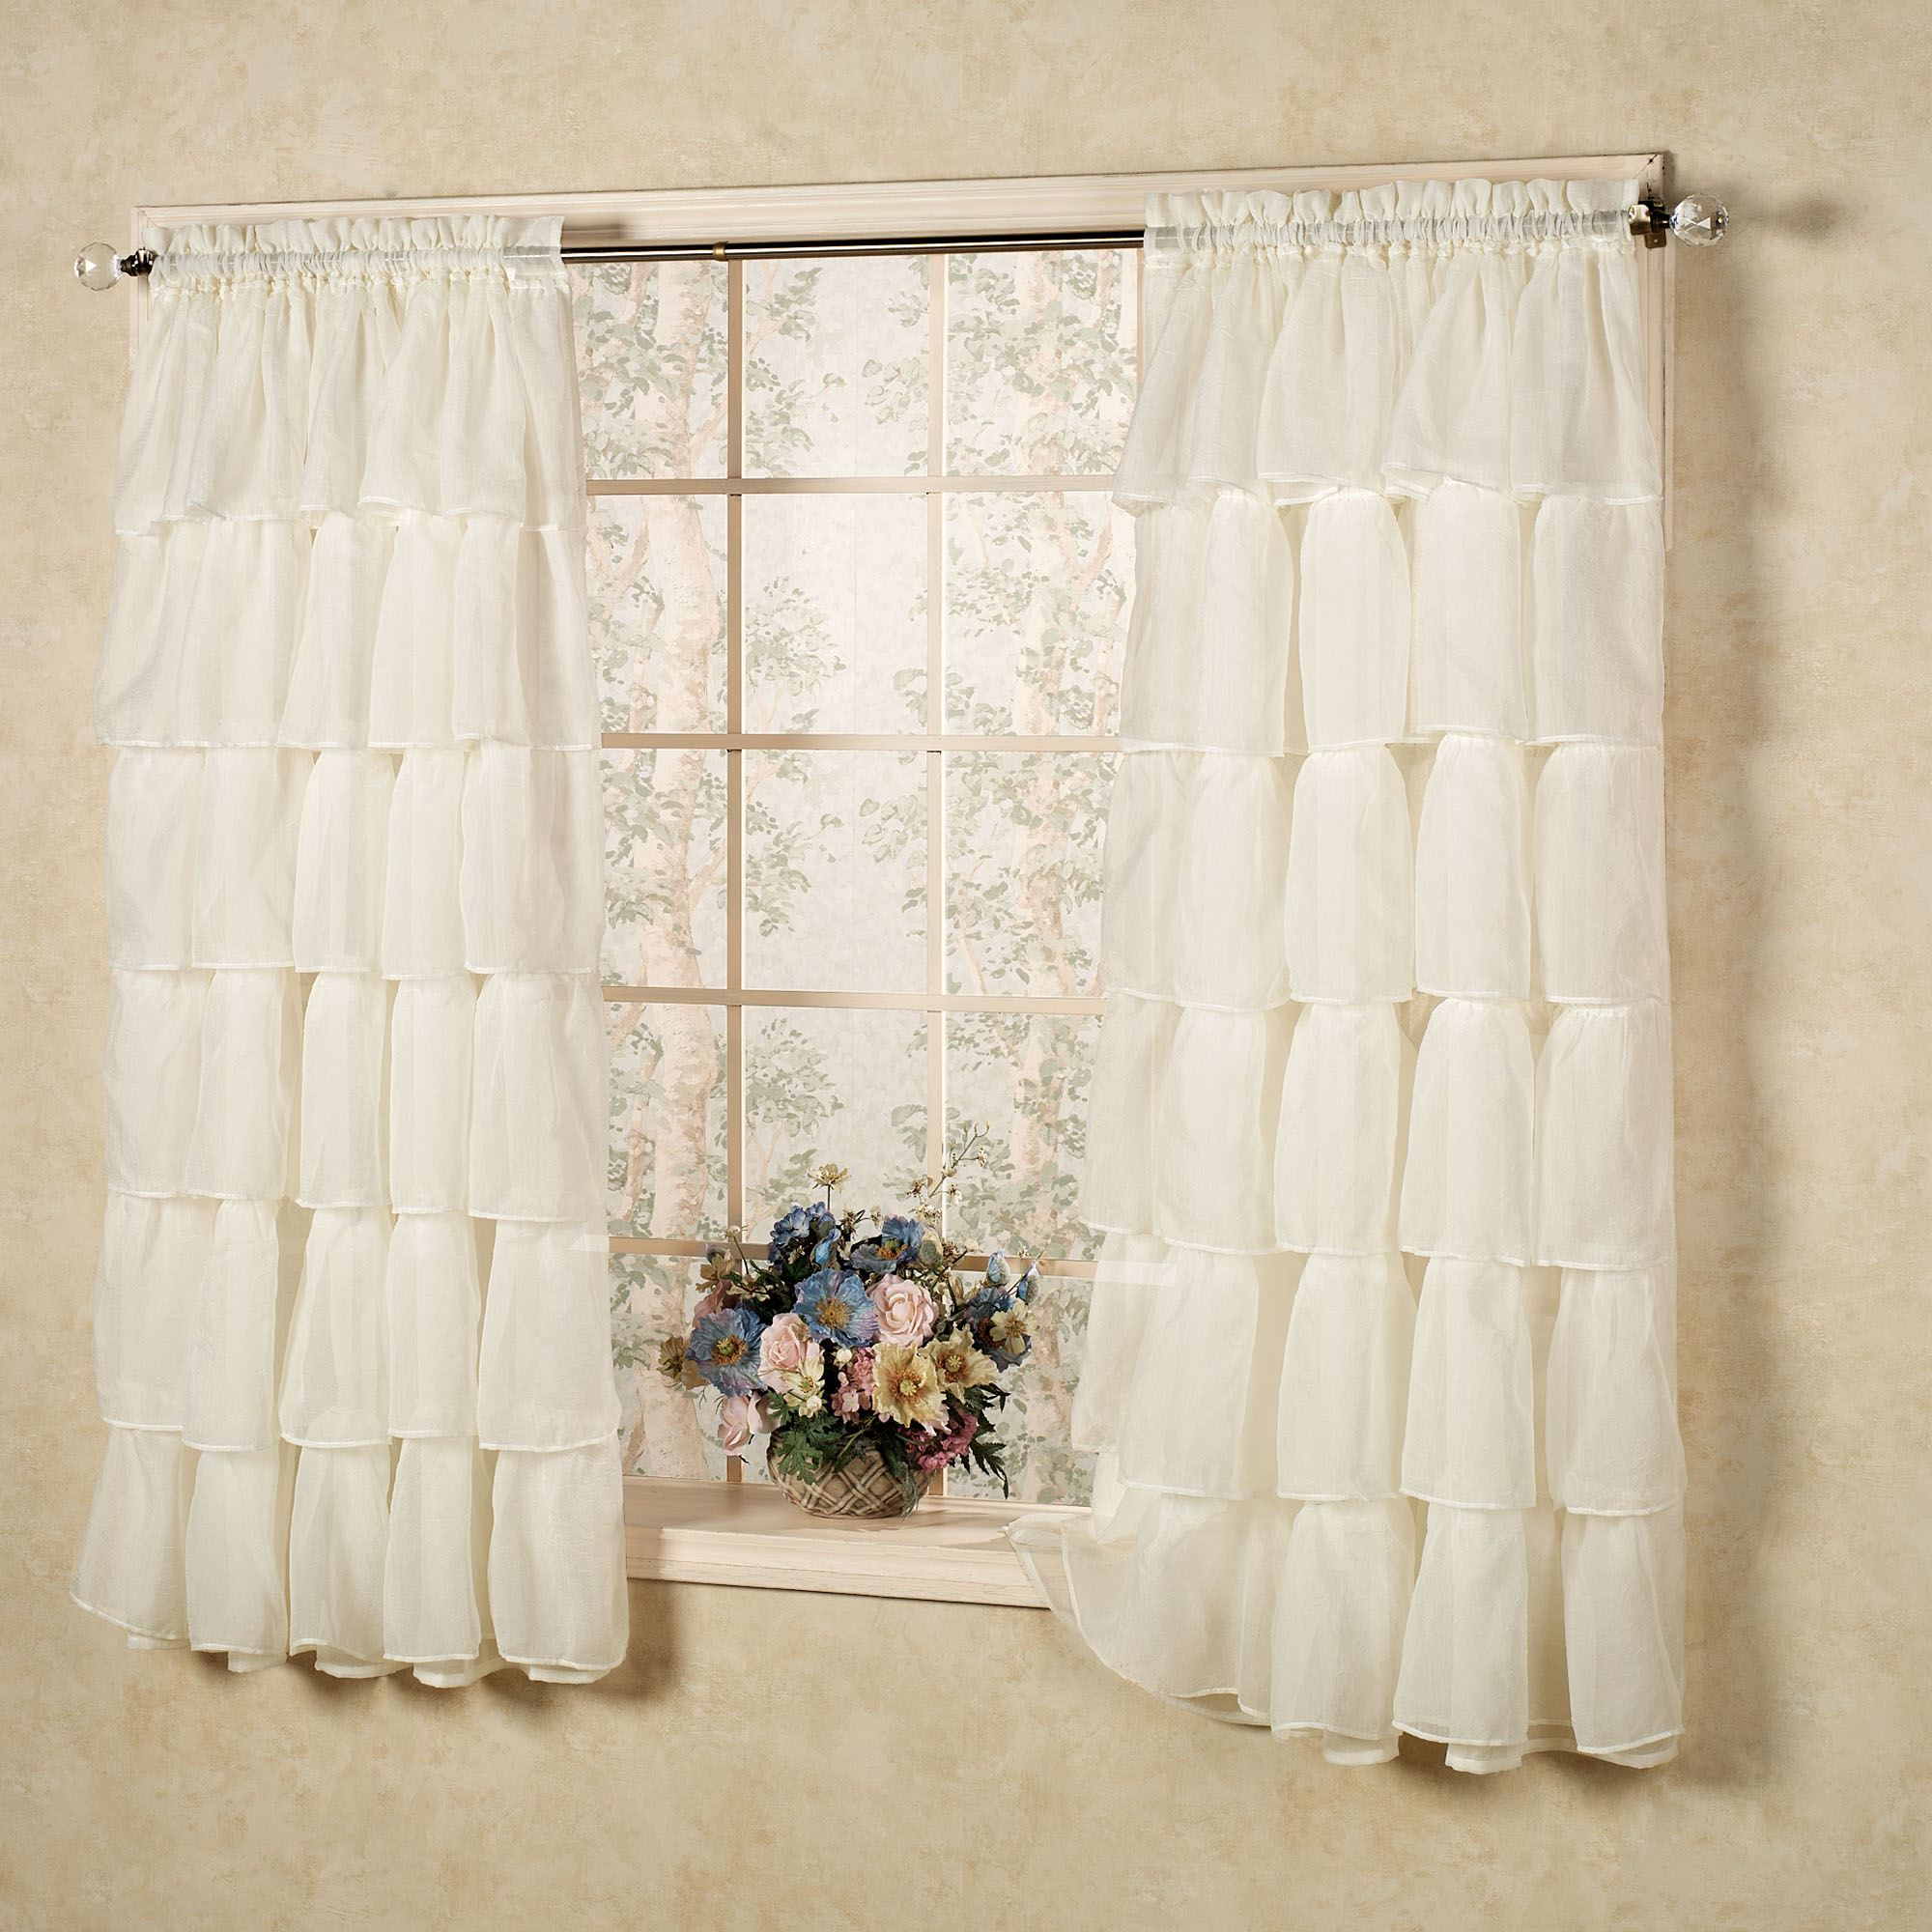 Gypsy Sheer Voile Ruffled Window Treatment Ruffled Curtains